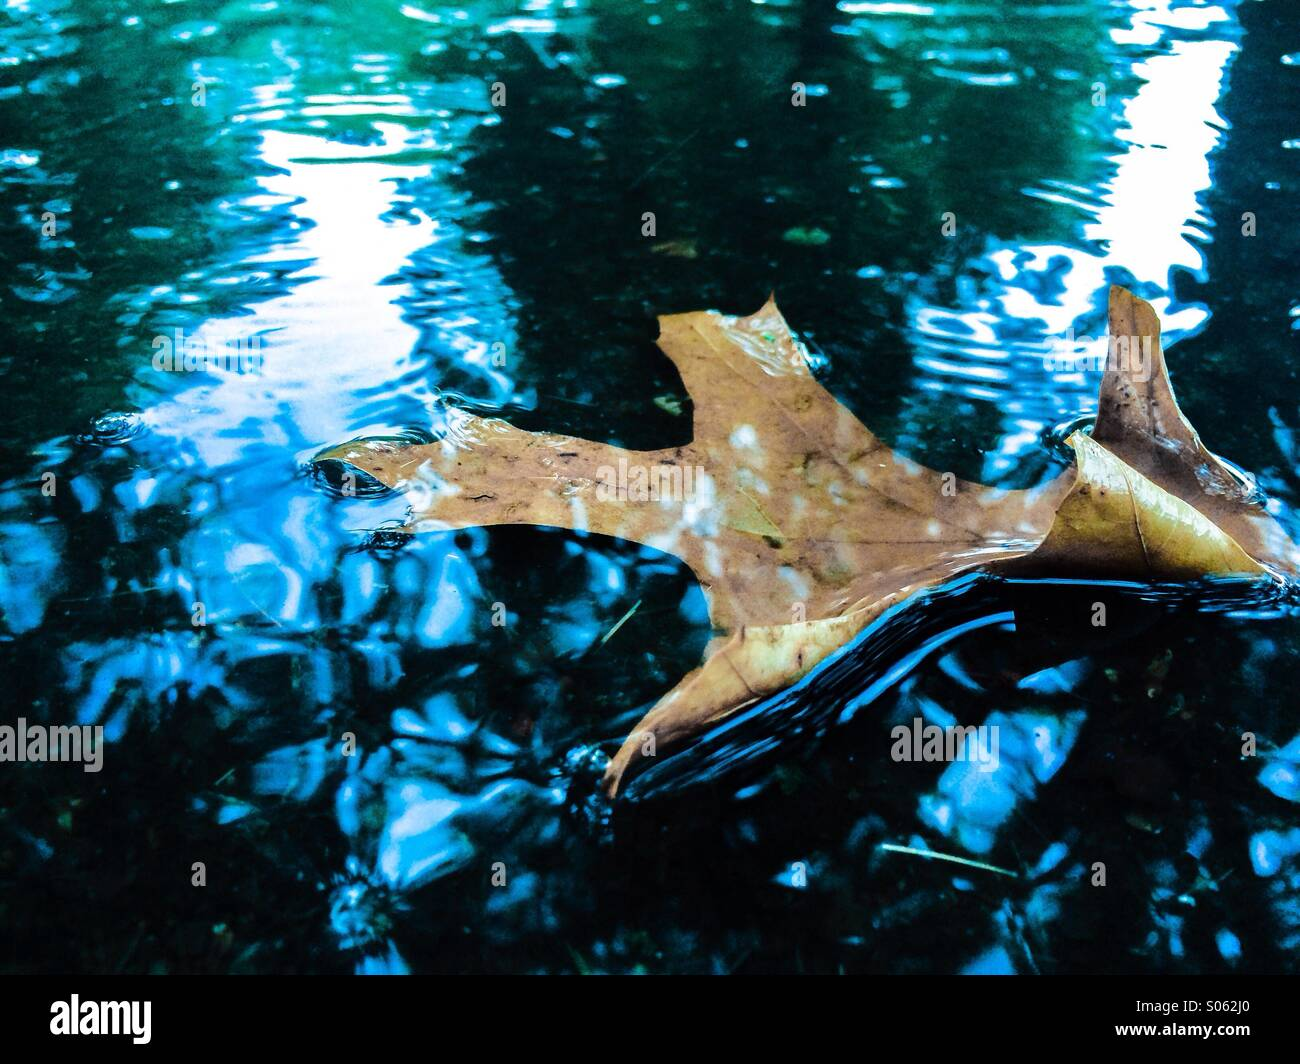 Leaf in puddle - Stock Image